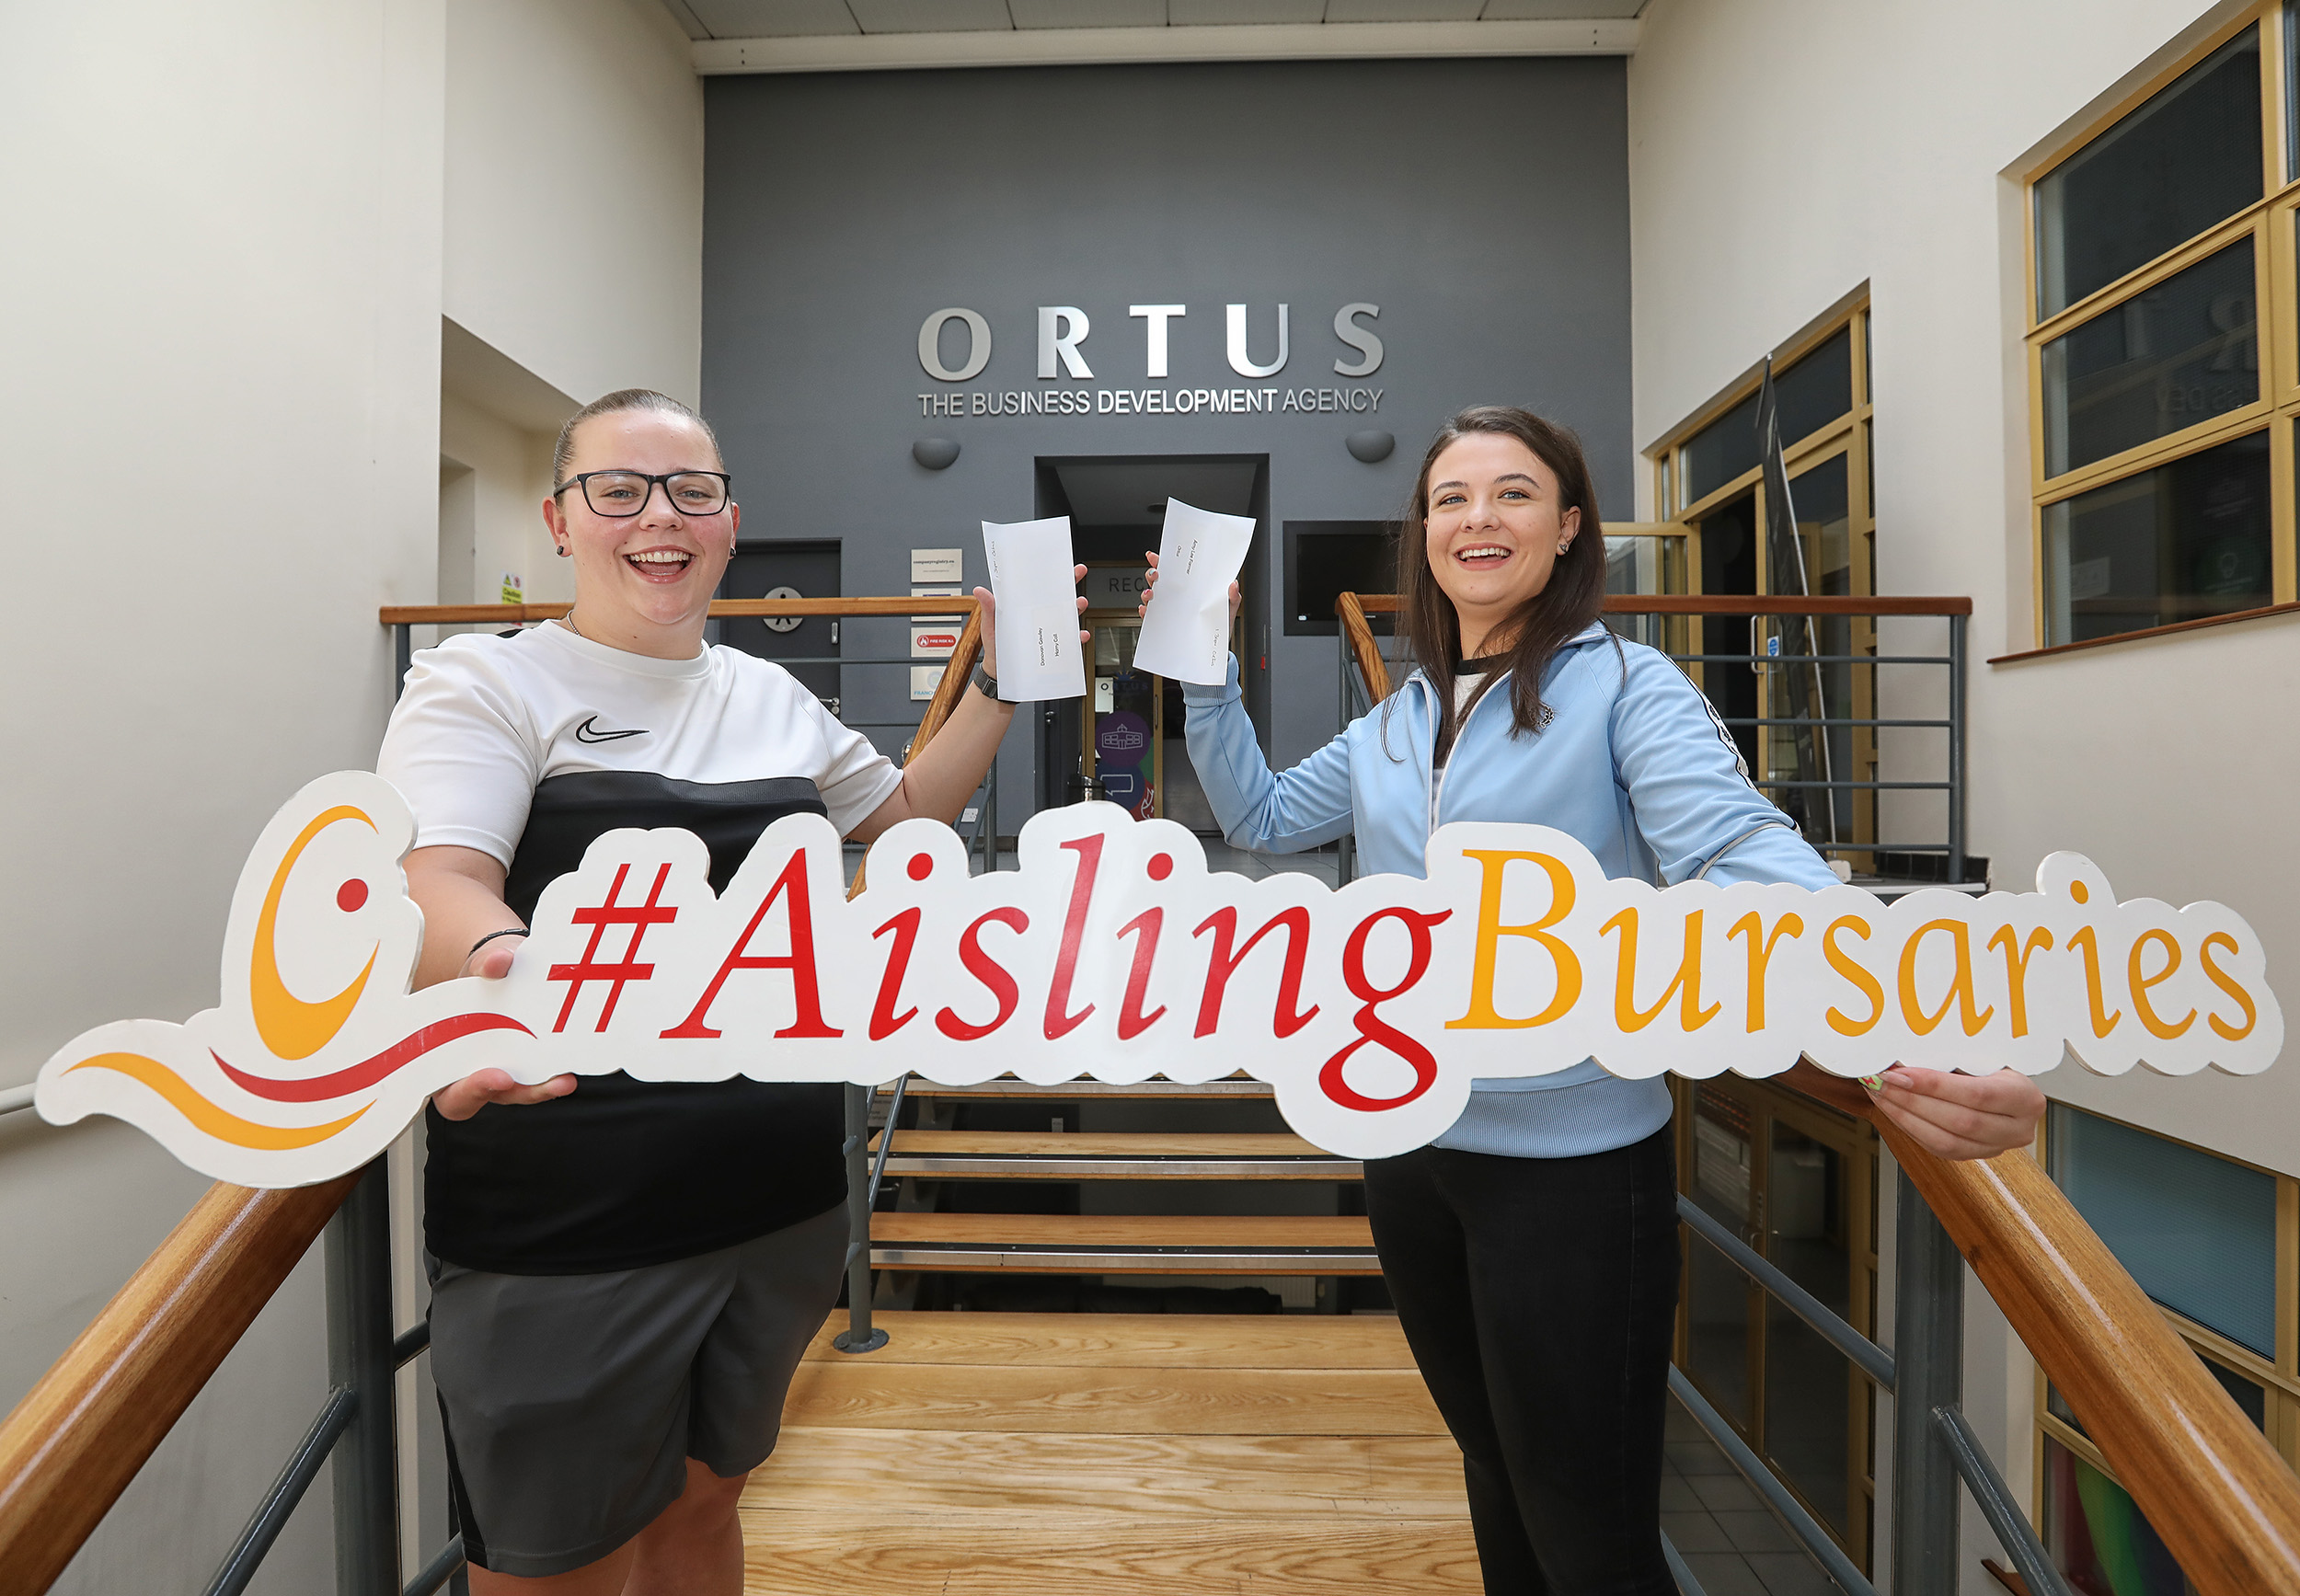 Donovan Gawley accepts the Ortus Bursary to help with her studies in a Certificate in Community Youth Studies at Ulster University. Amy-Lee Farmer, who is entering second year in Law LLB at Queen's University is delighted to accept the Harry Coll Memorial Bursary.